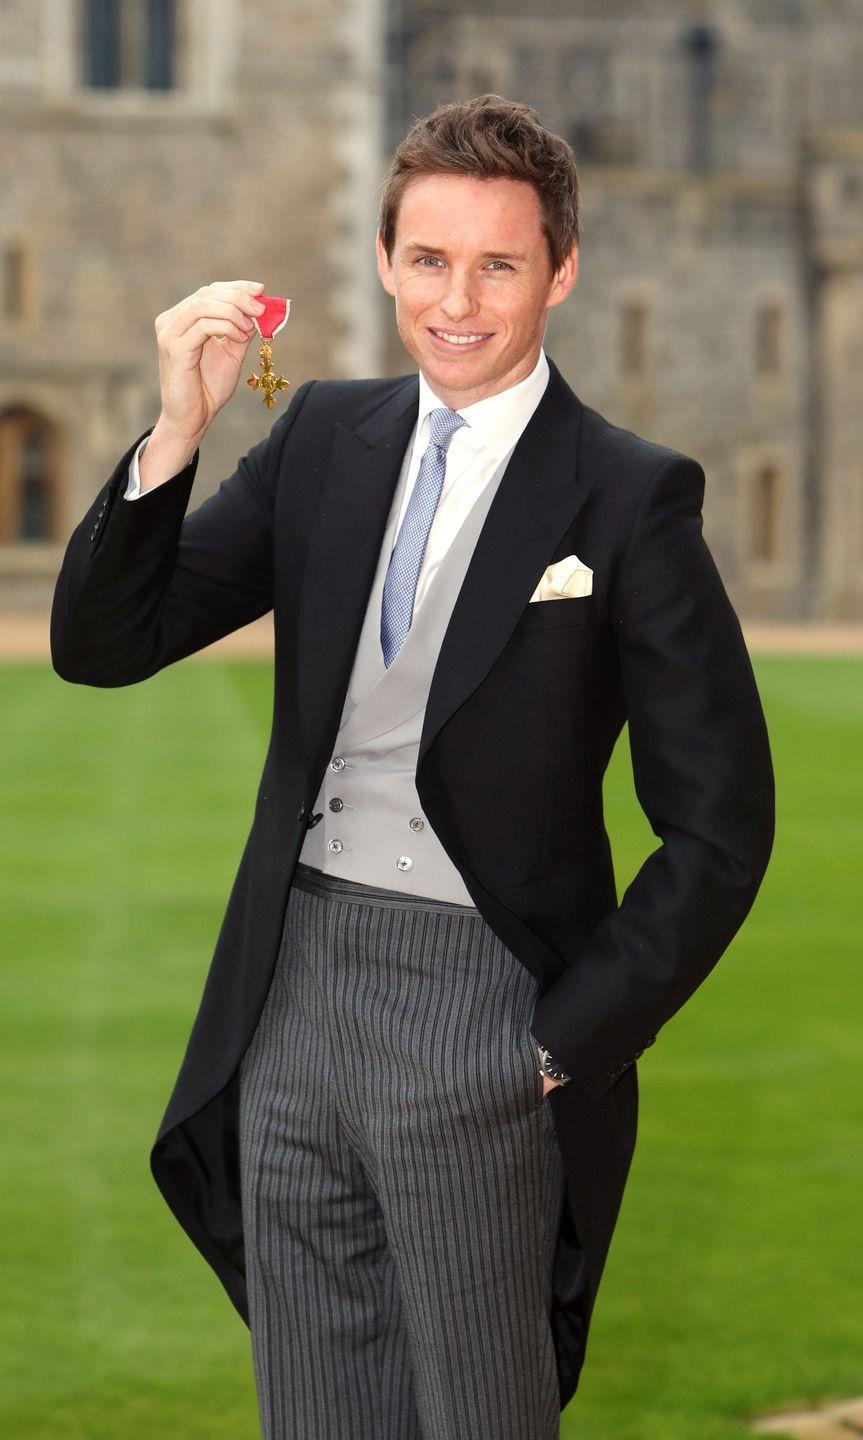 <p>In 2016, Queen Elizabeth appointed Redmayne an Officer of the Order of the British Empire (OBE).</p>